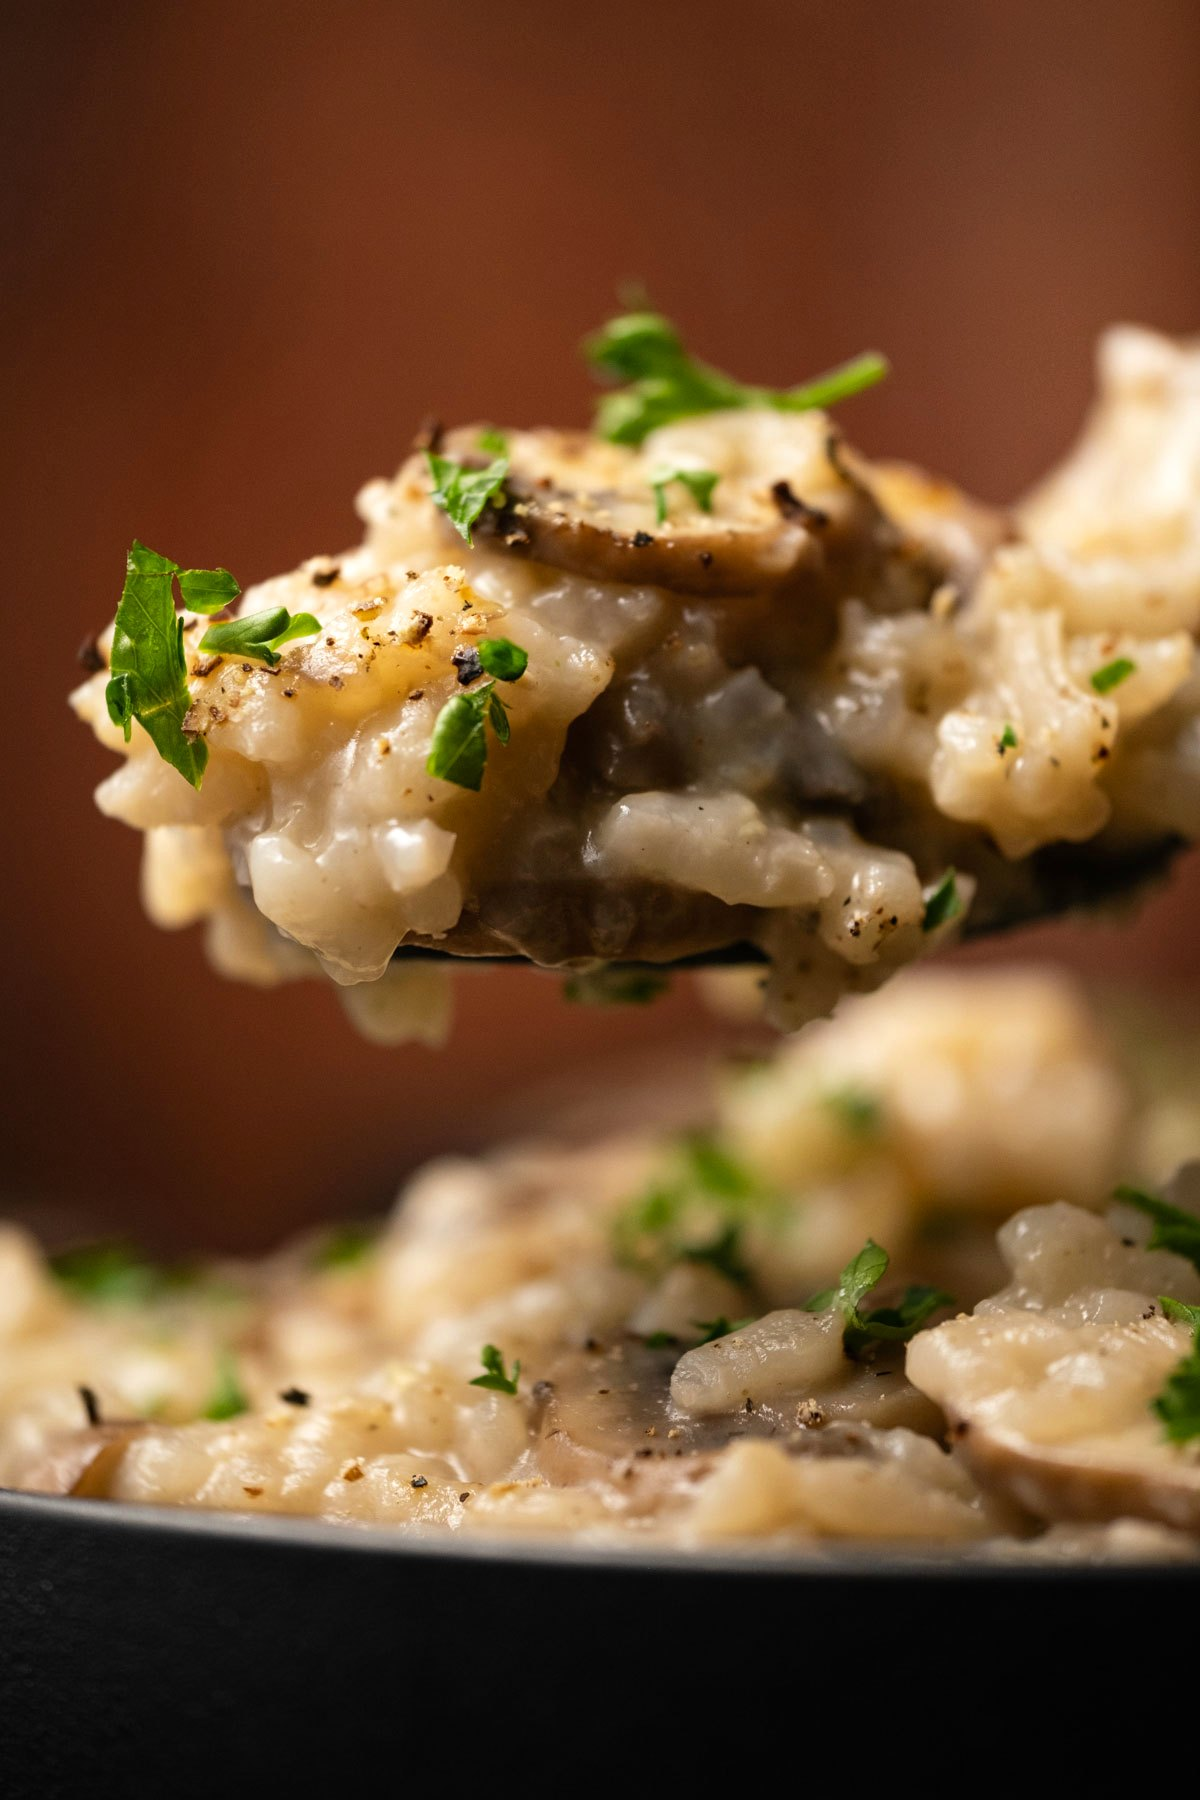 Spoon with mushroom risotto.